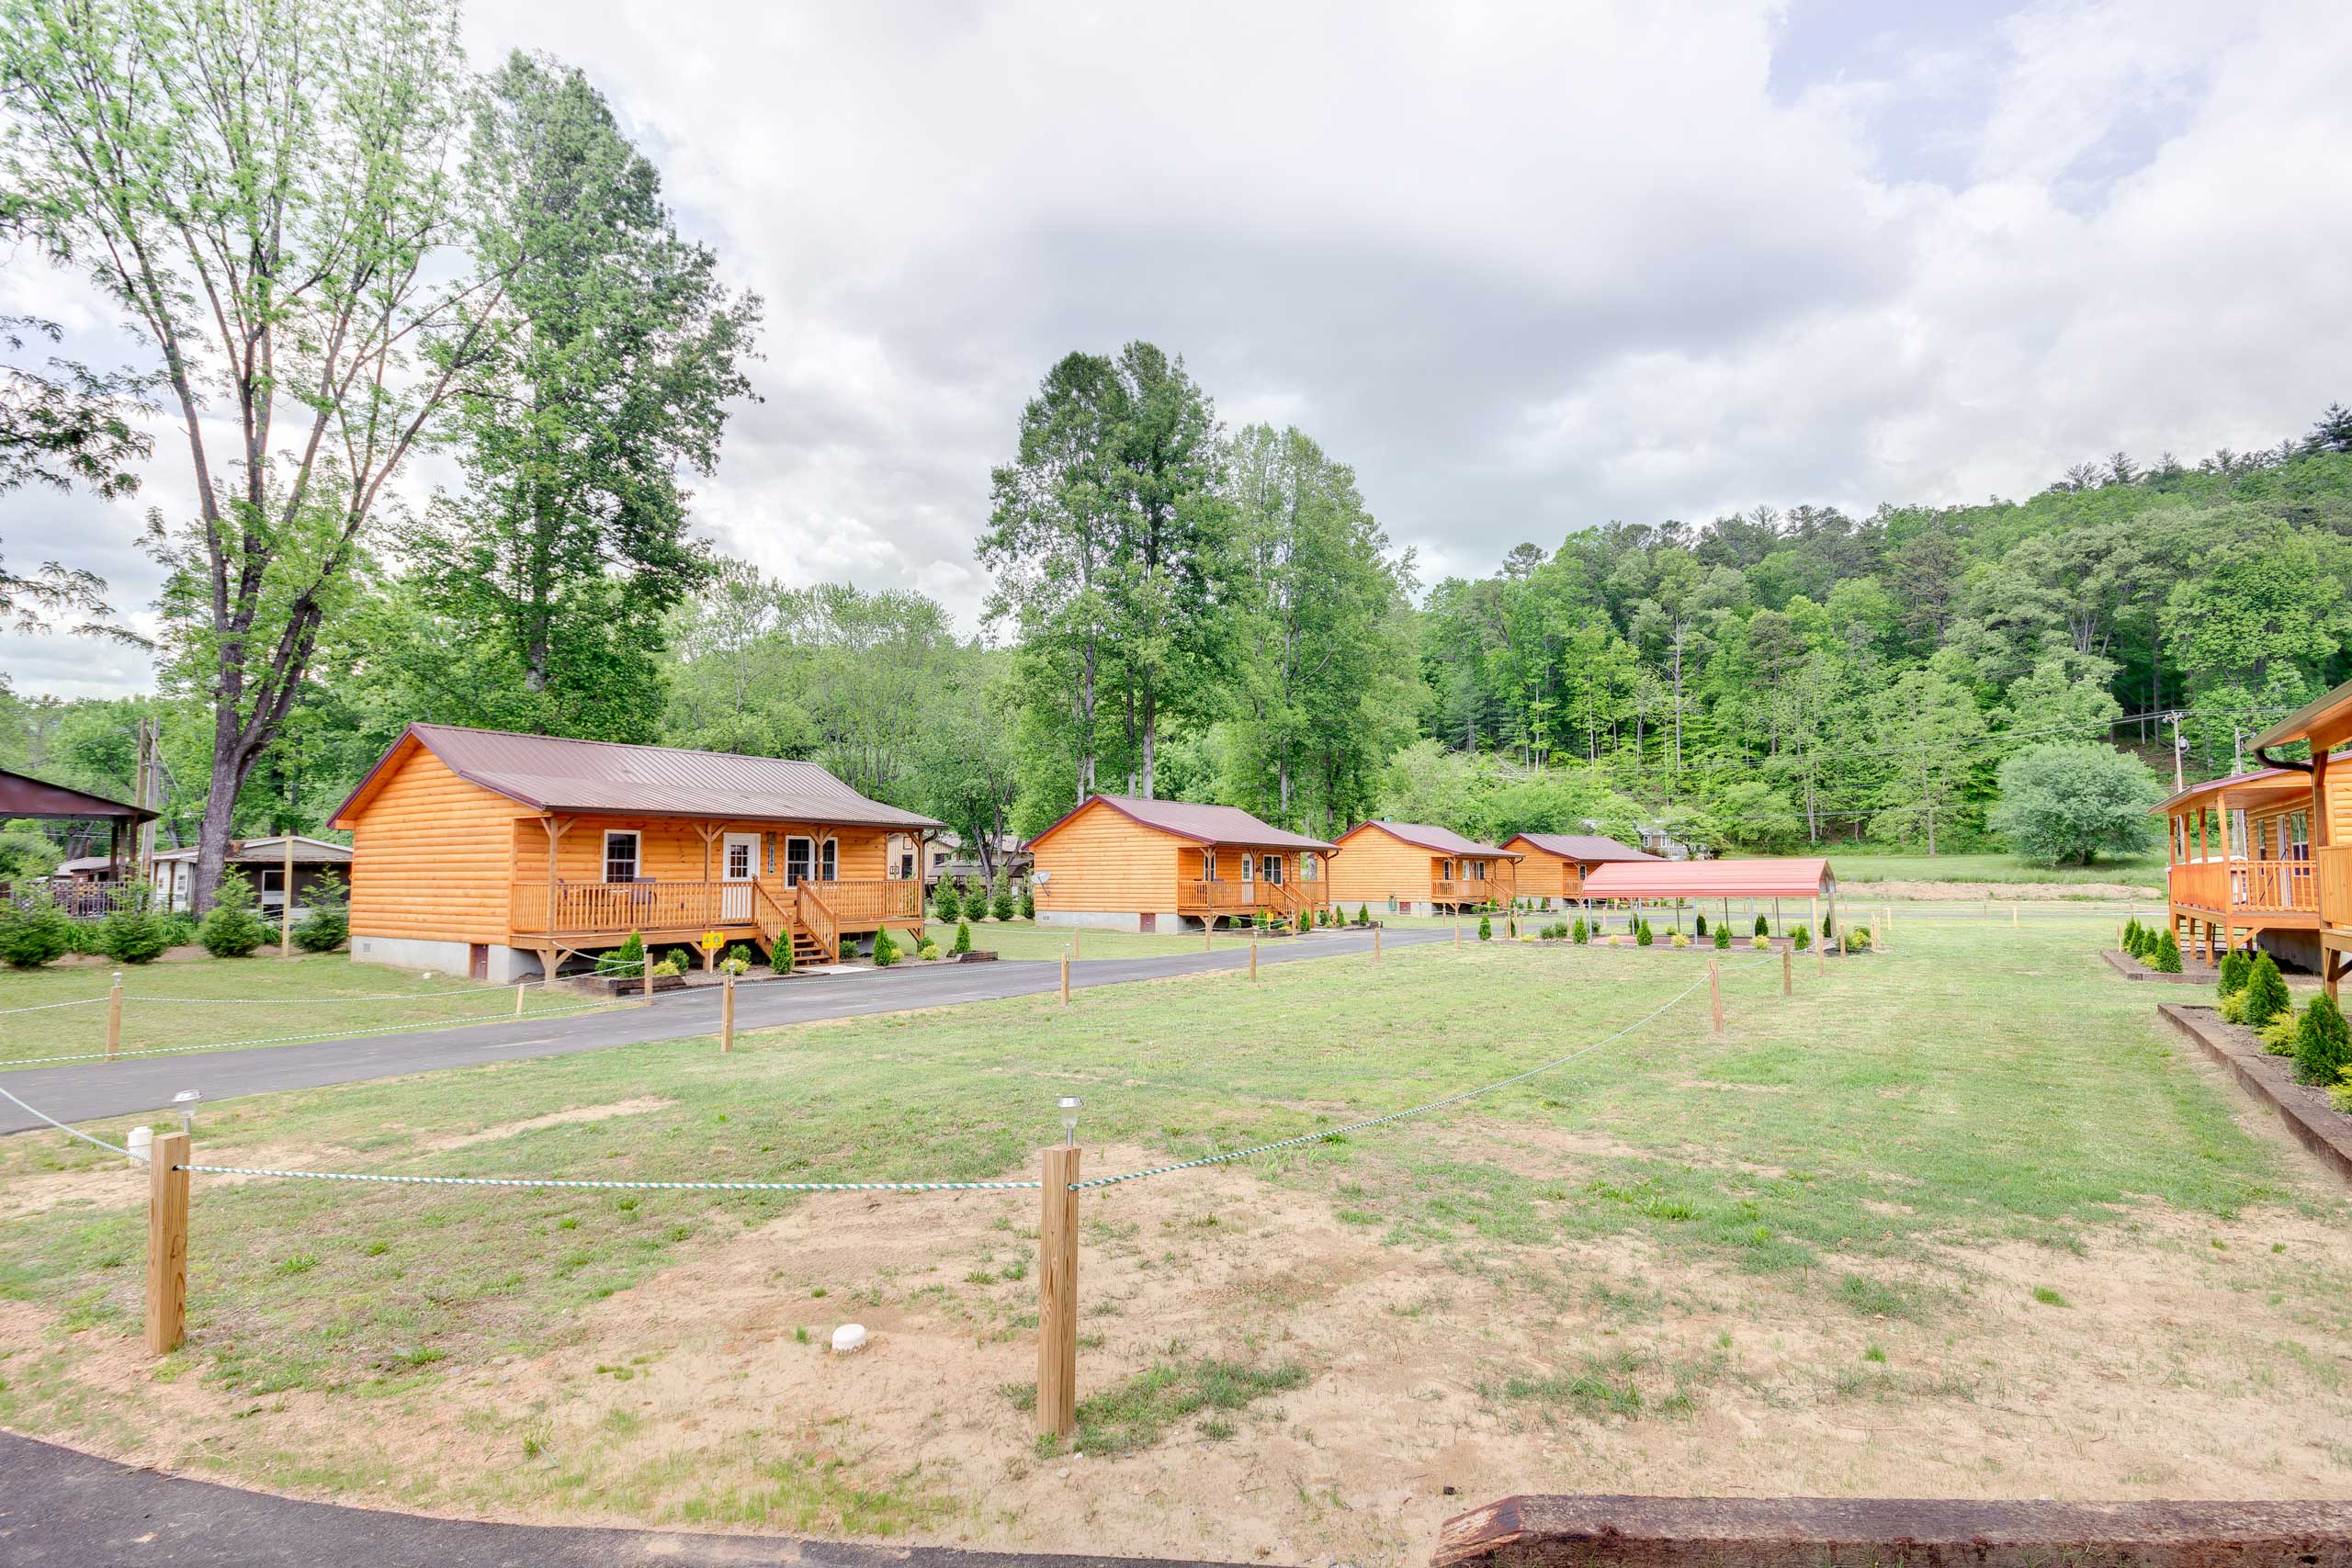 Several other properties are on-site and available for rental!